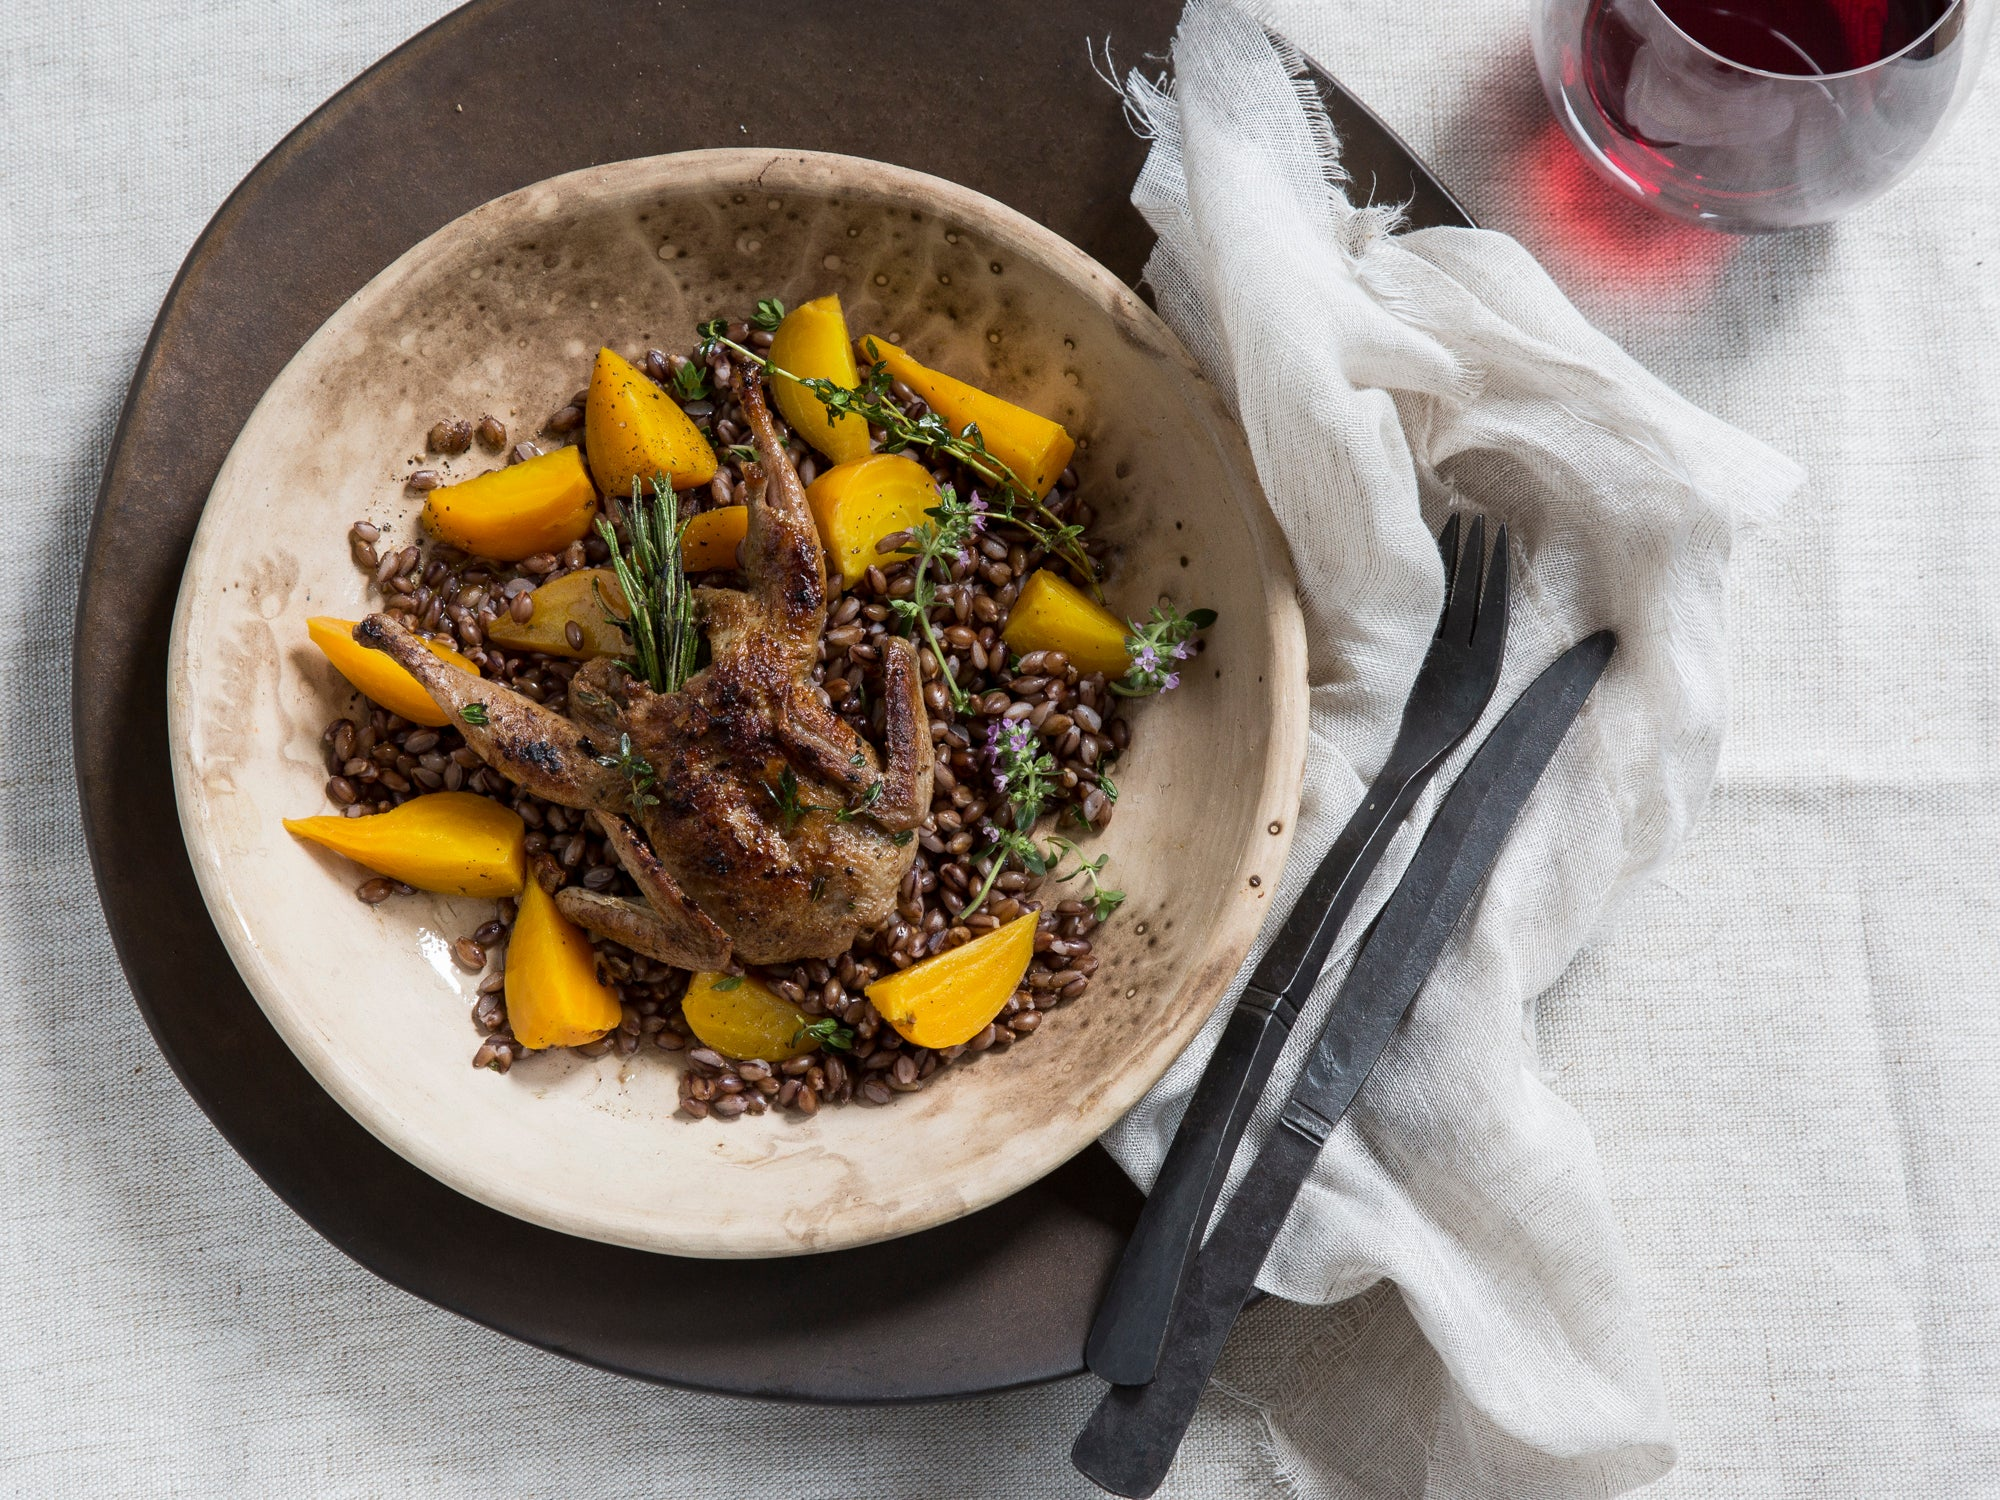 Sautéed Quail with Black Barley, Beets, and Fig Sauce